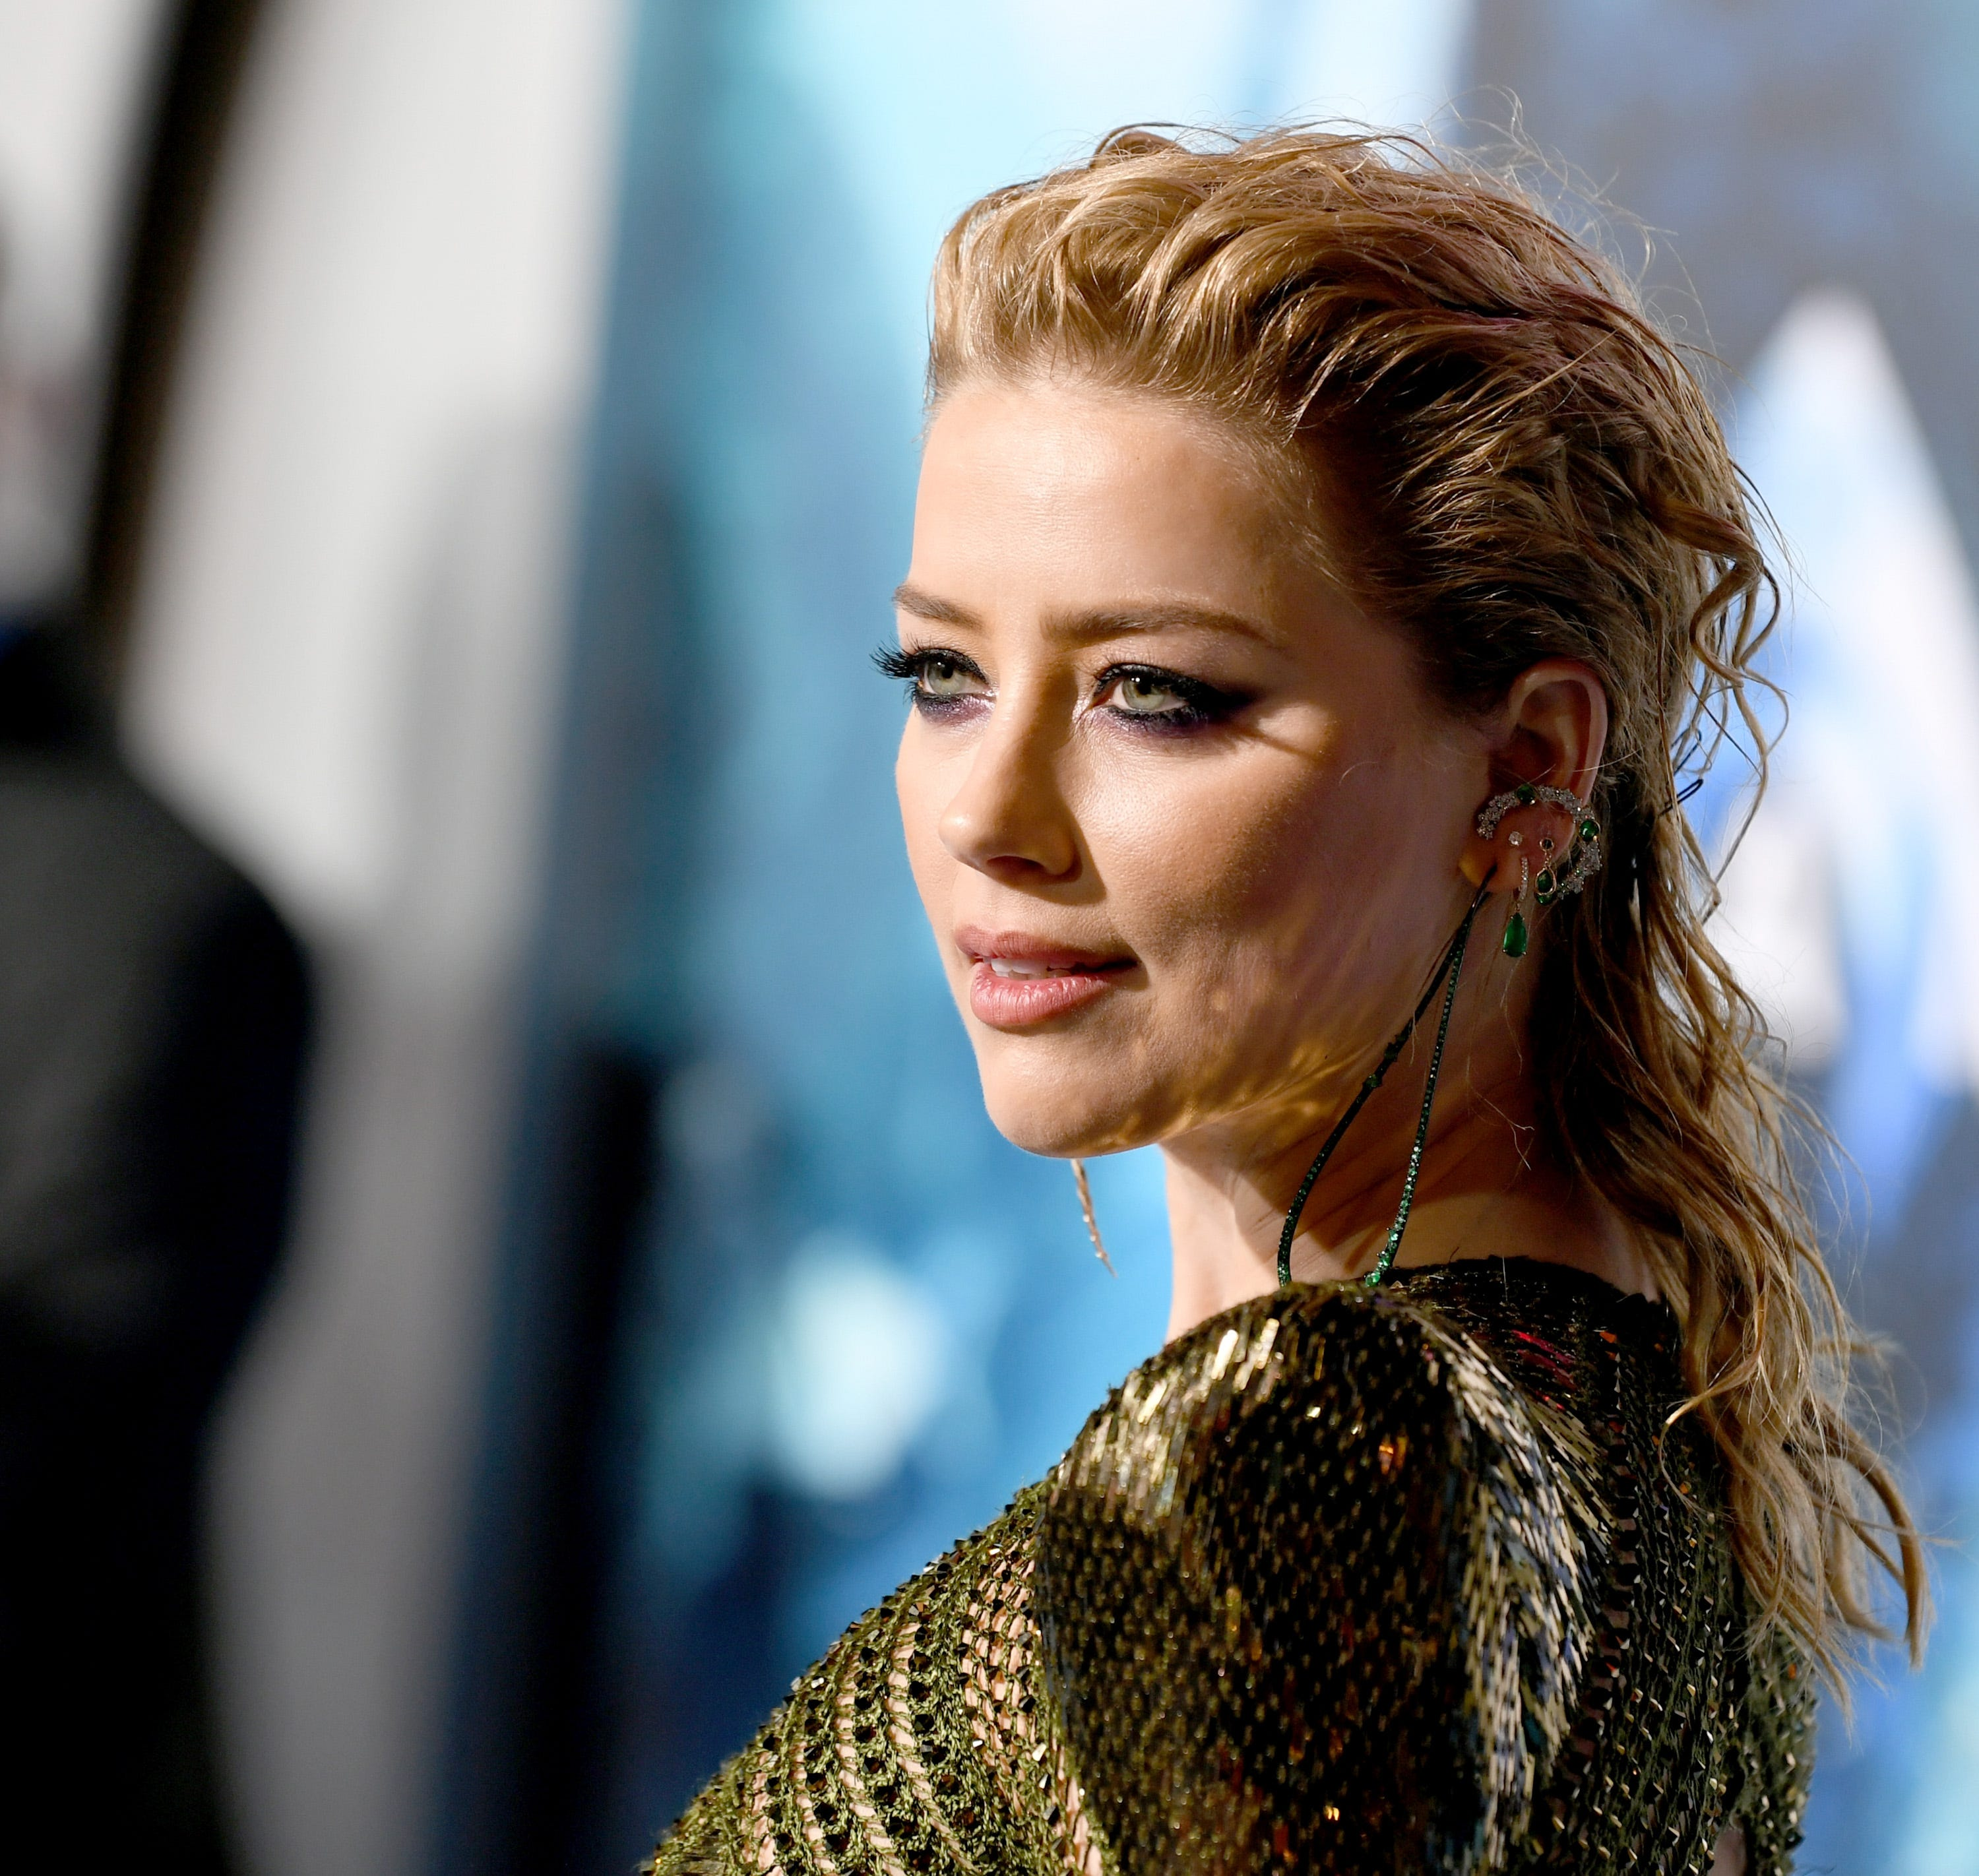 Johnny Depp's ex-wife, Amber Heard, asks judge to dismiss $50M defamation lawsuit